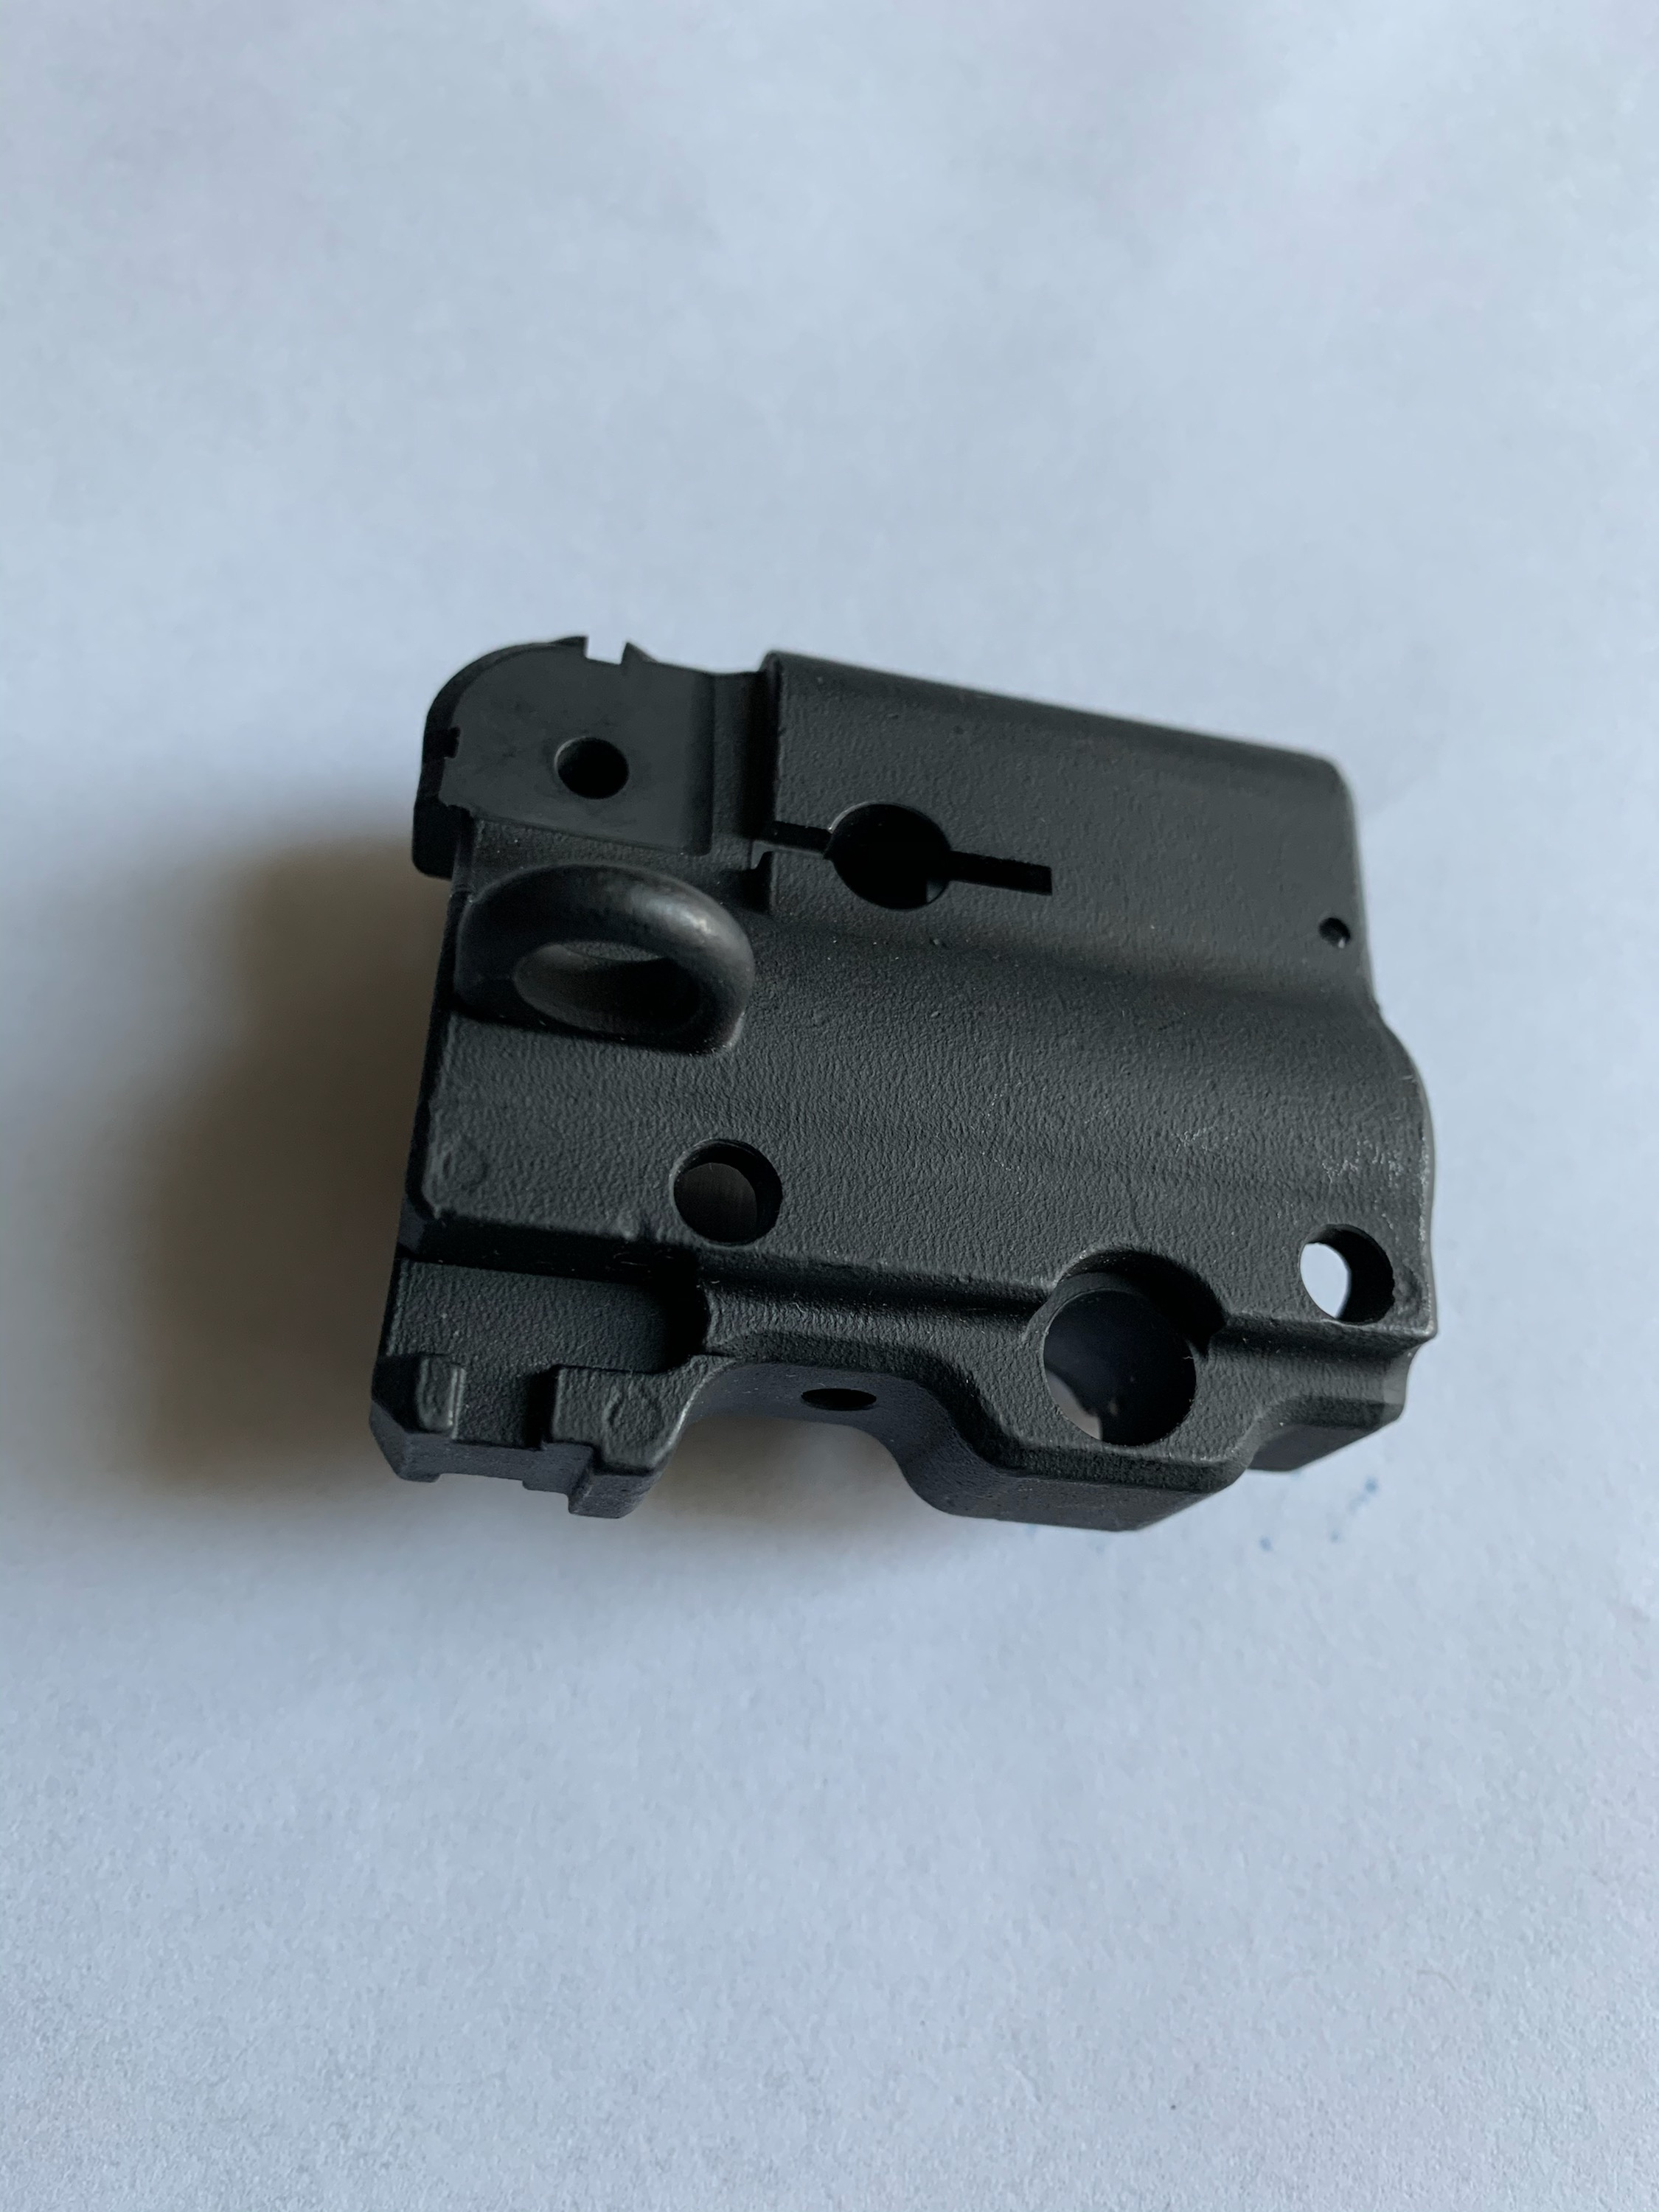 WTS: HK417 slim-line stock & 416 parts (SOLD)-img_4127.heic.jpeg